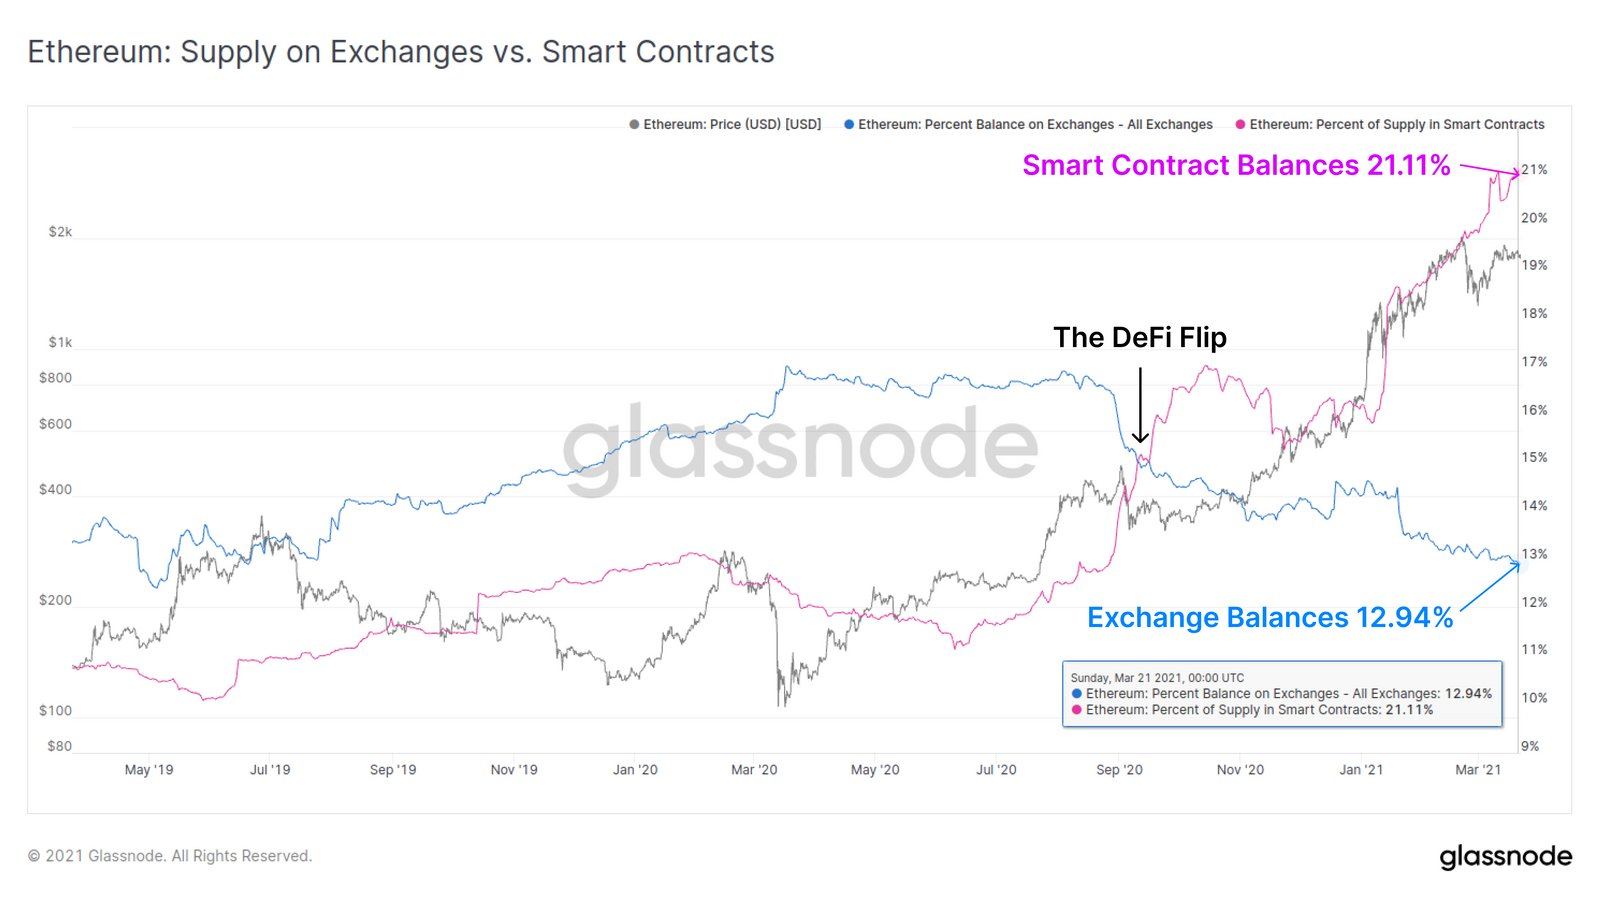 Three Important Data Reveal Significance of ETH in Ethereum Ecosystem and How Bright the Future Is